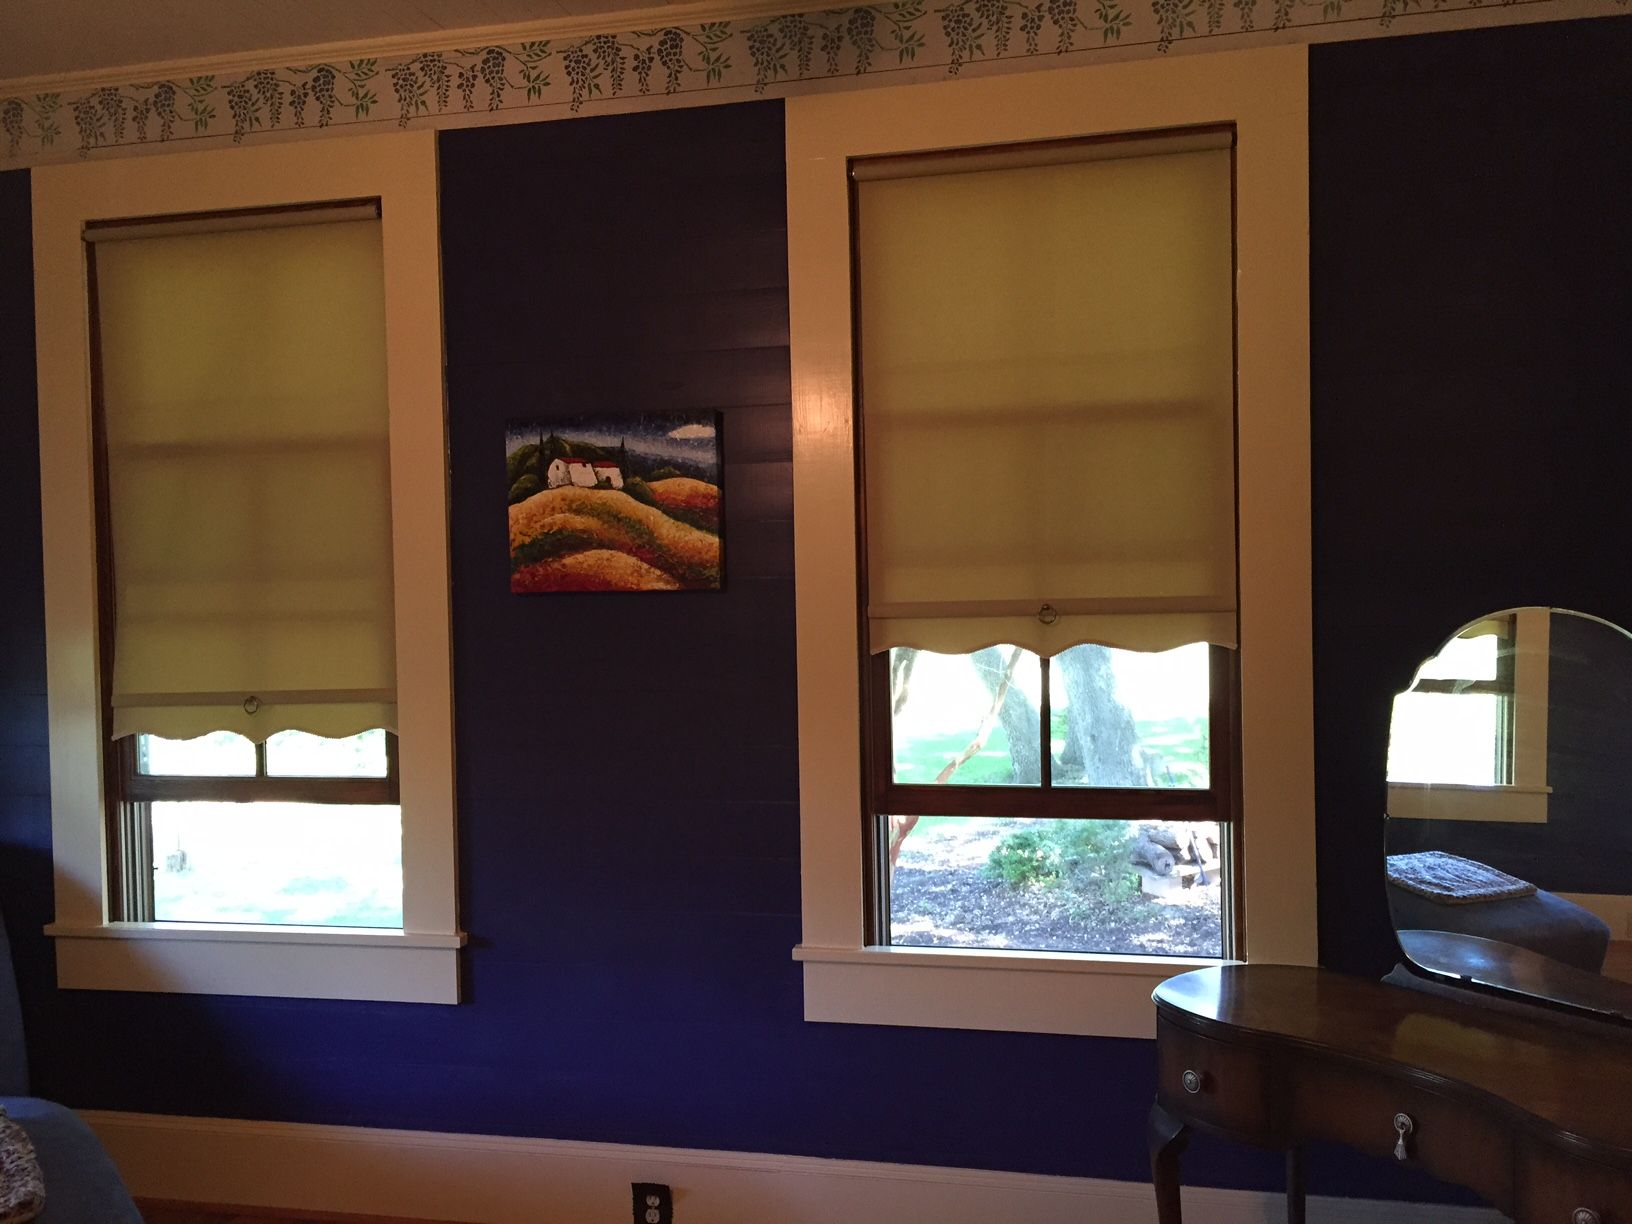 view thanks beautiful soluna sun pearl roller is portland budget shades the pin blinds not but blocked norman to beautifulwindows